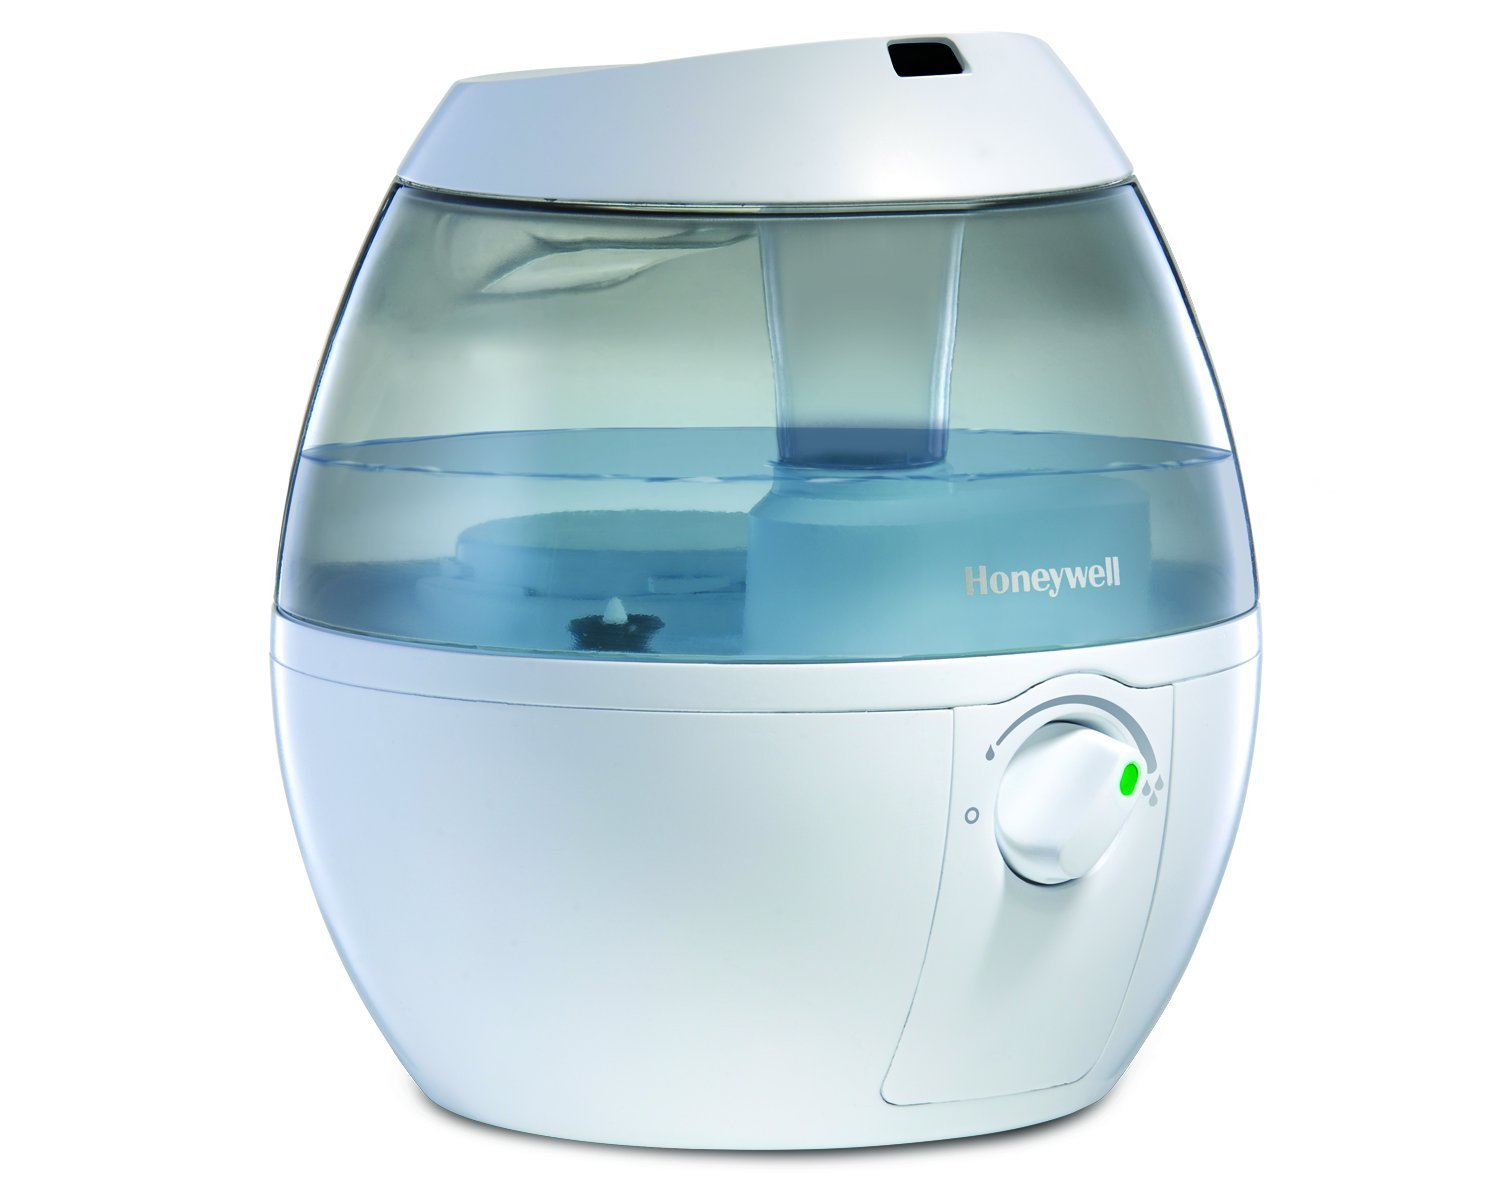 honeywell mistmate cool mist humidifier no filter required ultra quiet  #10BB10